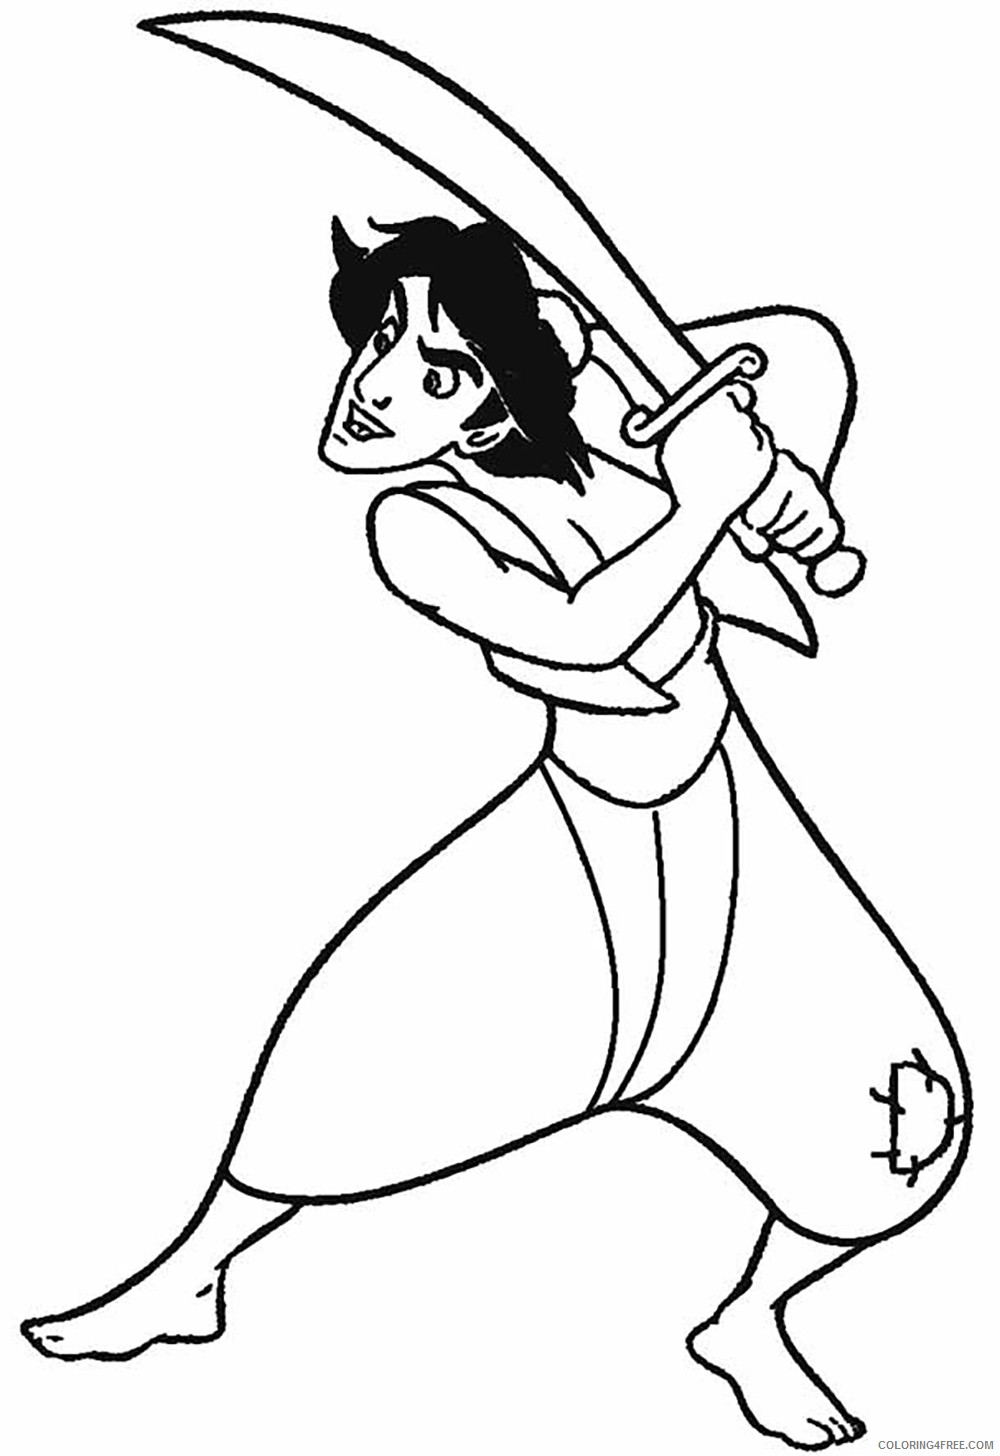 aladdin coloring pages holding sword Coloring4free